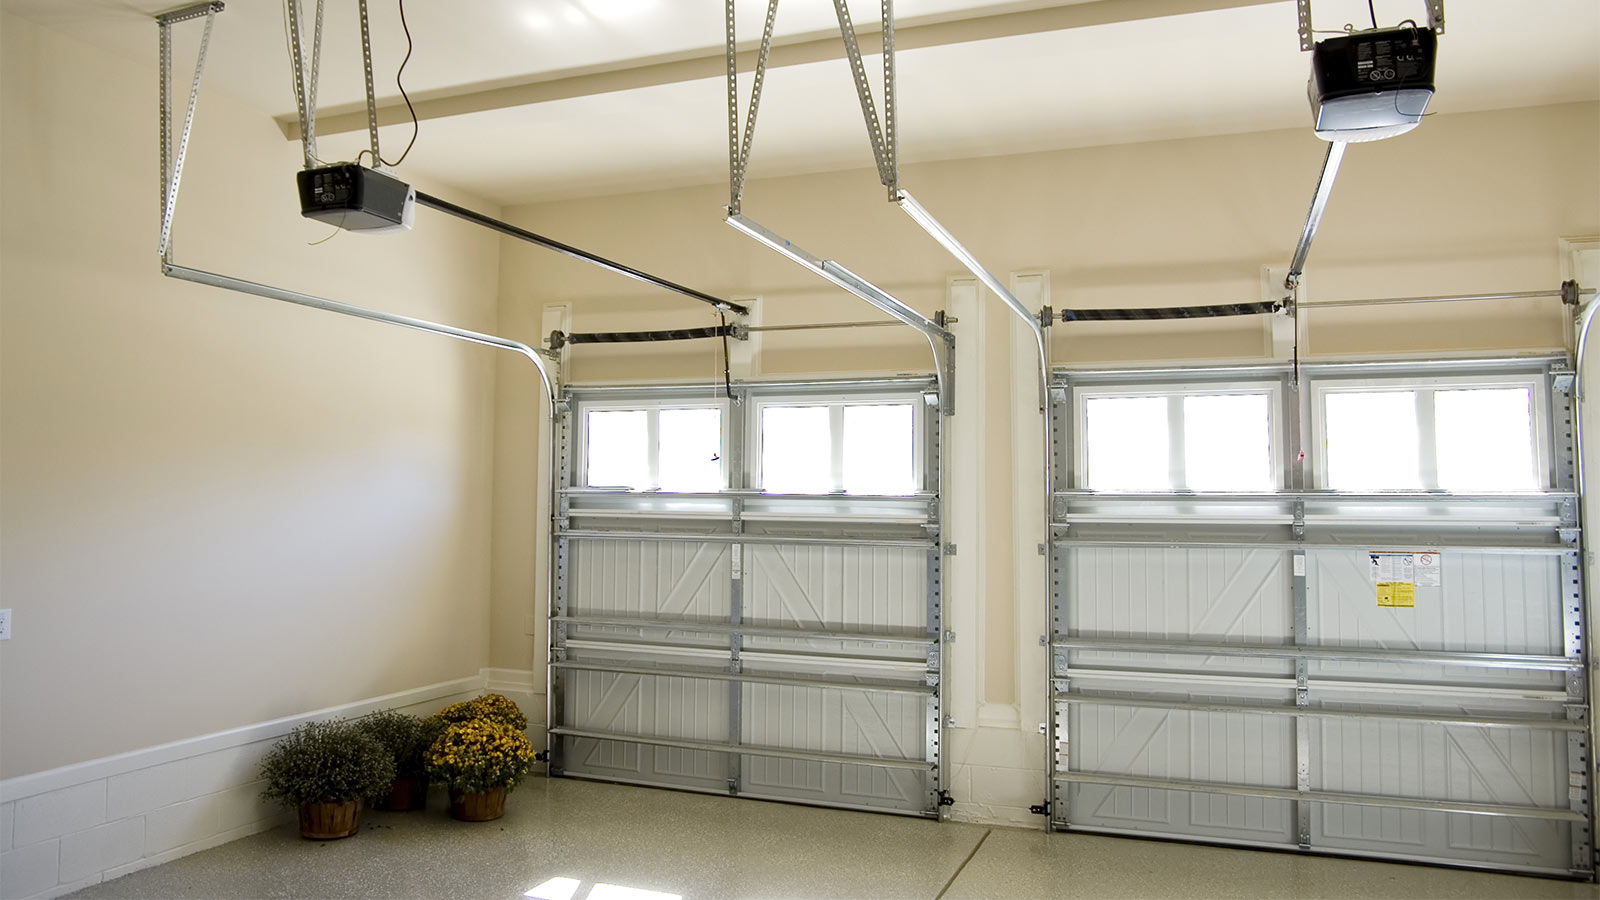 Sectional Garage Doors from Window Roller Shutters Luton suppliers.